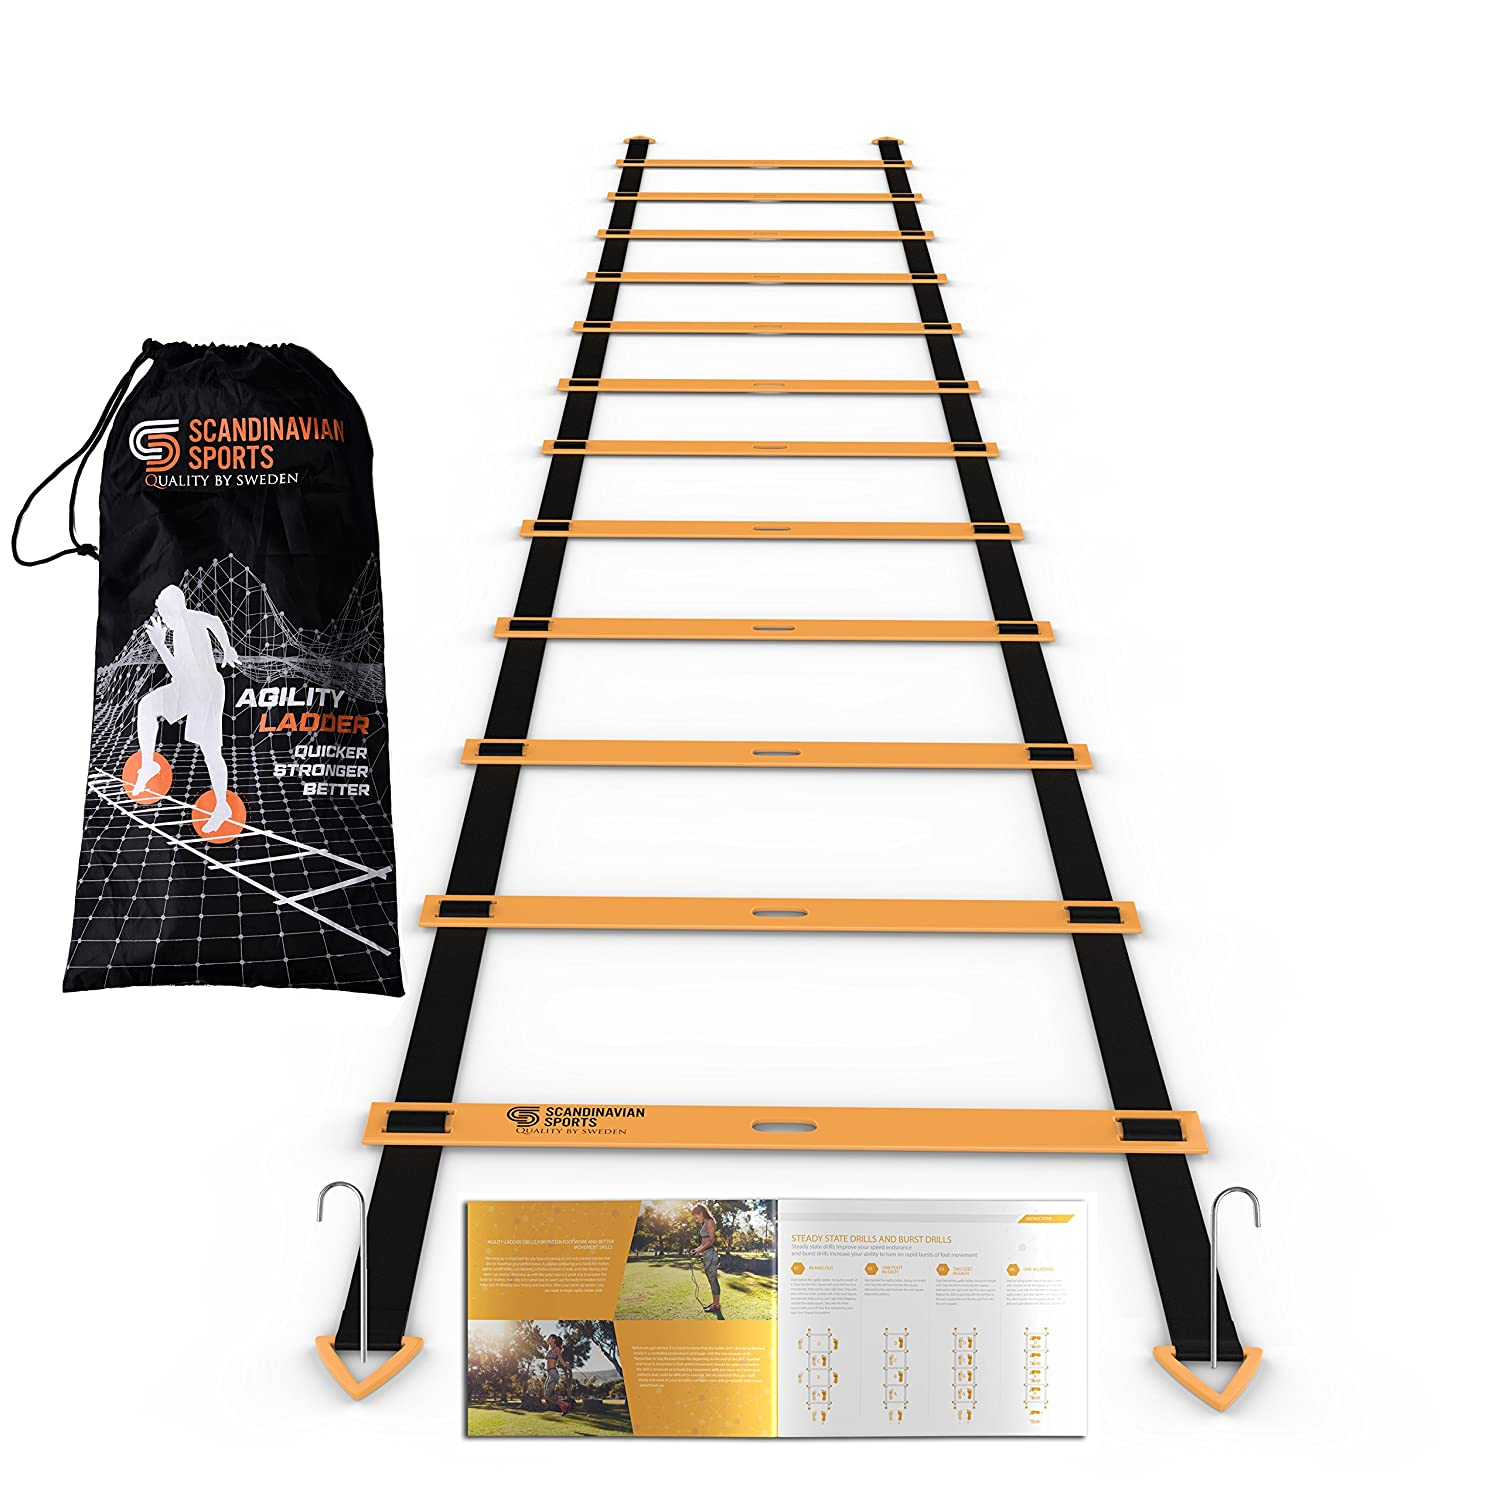 Scandinavian Sports Agility Ladder - 12 Adjustable Rungs 19 Feet - Agility & Speed Training Kit - Quickness Training Equipment for Faster Footwork and Better Movement Skills